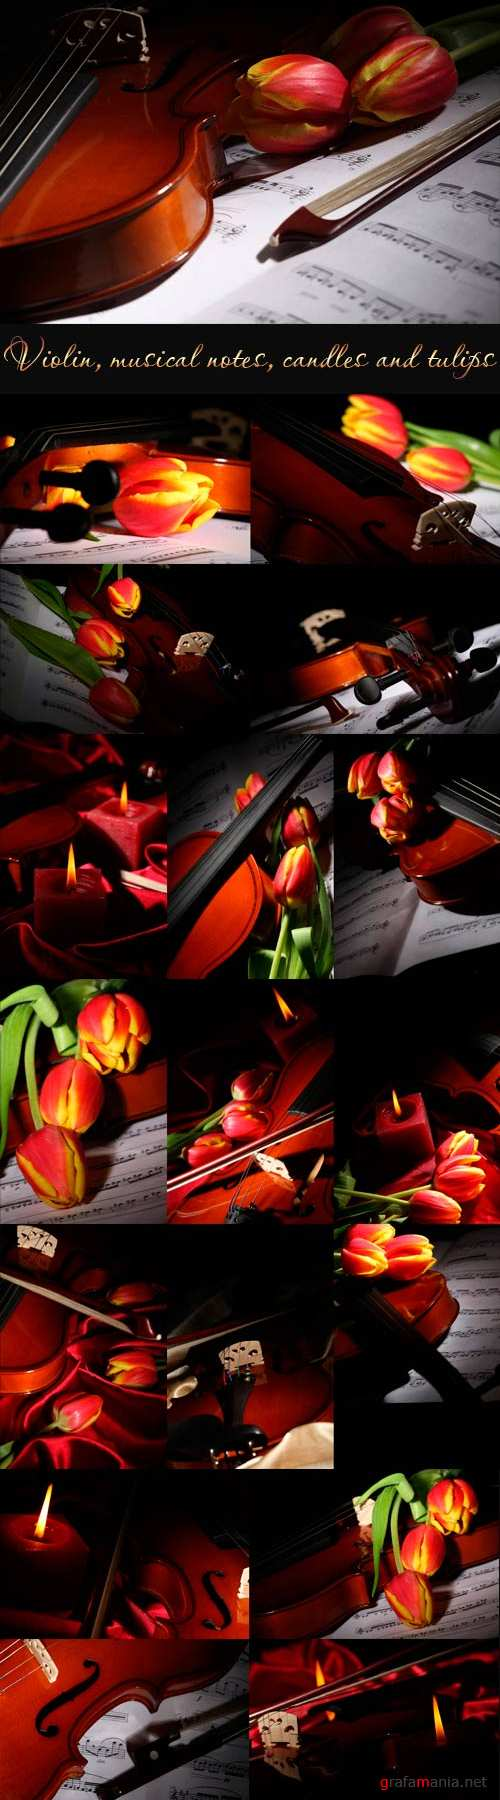 Violin, musical notes, candles and tulips